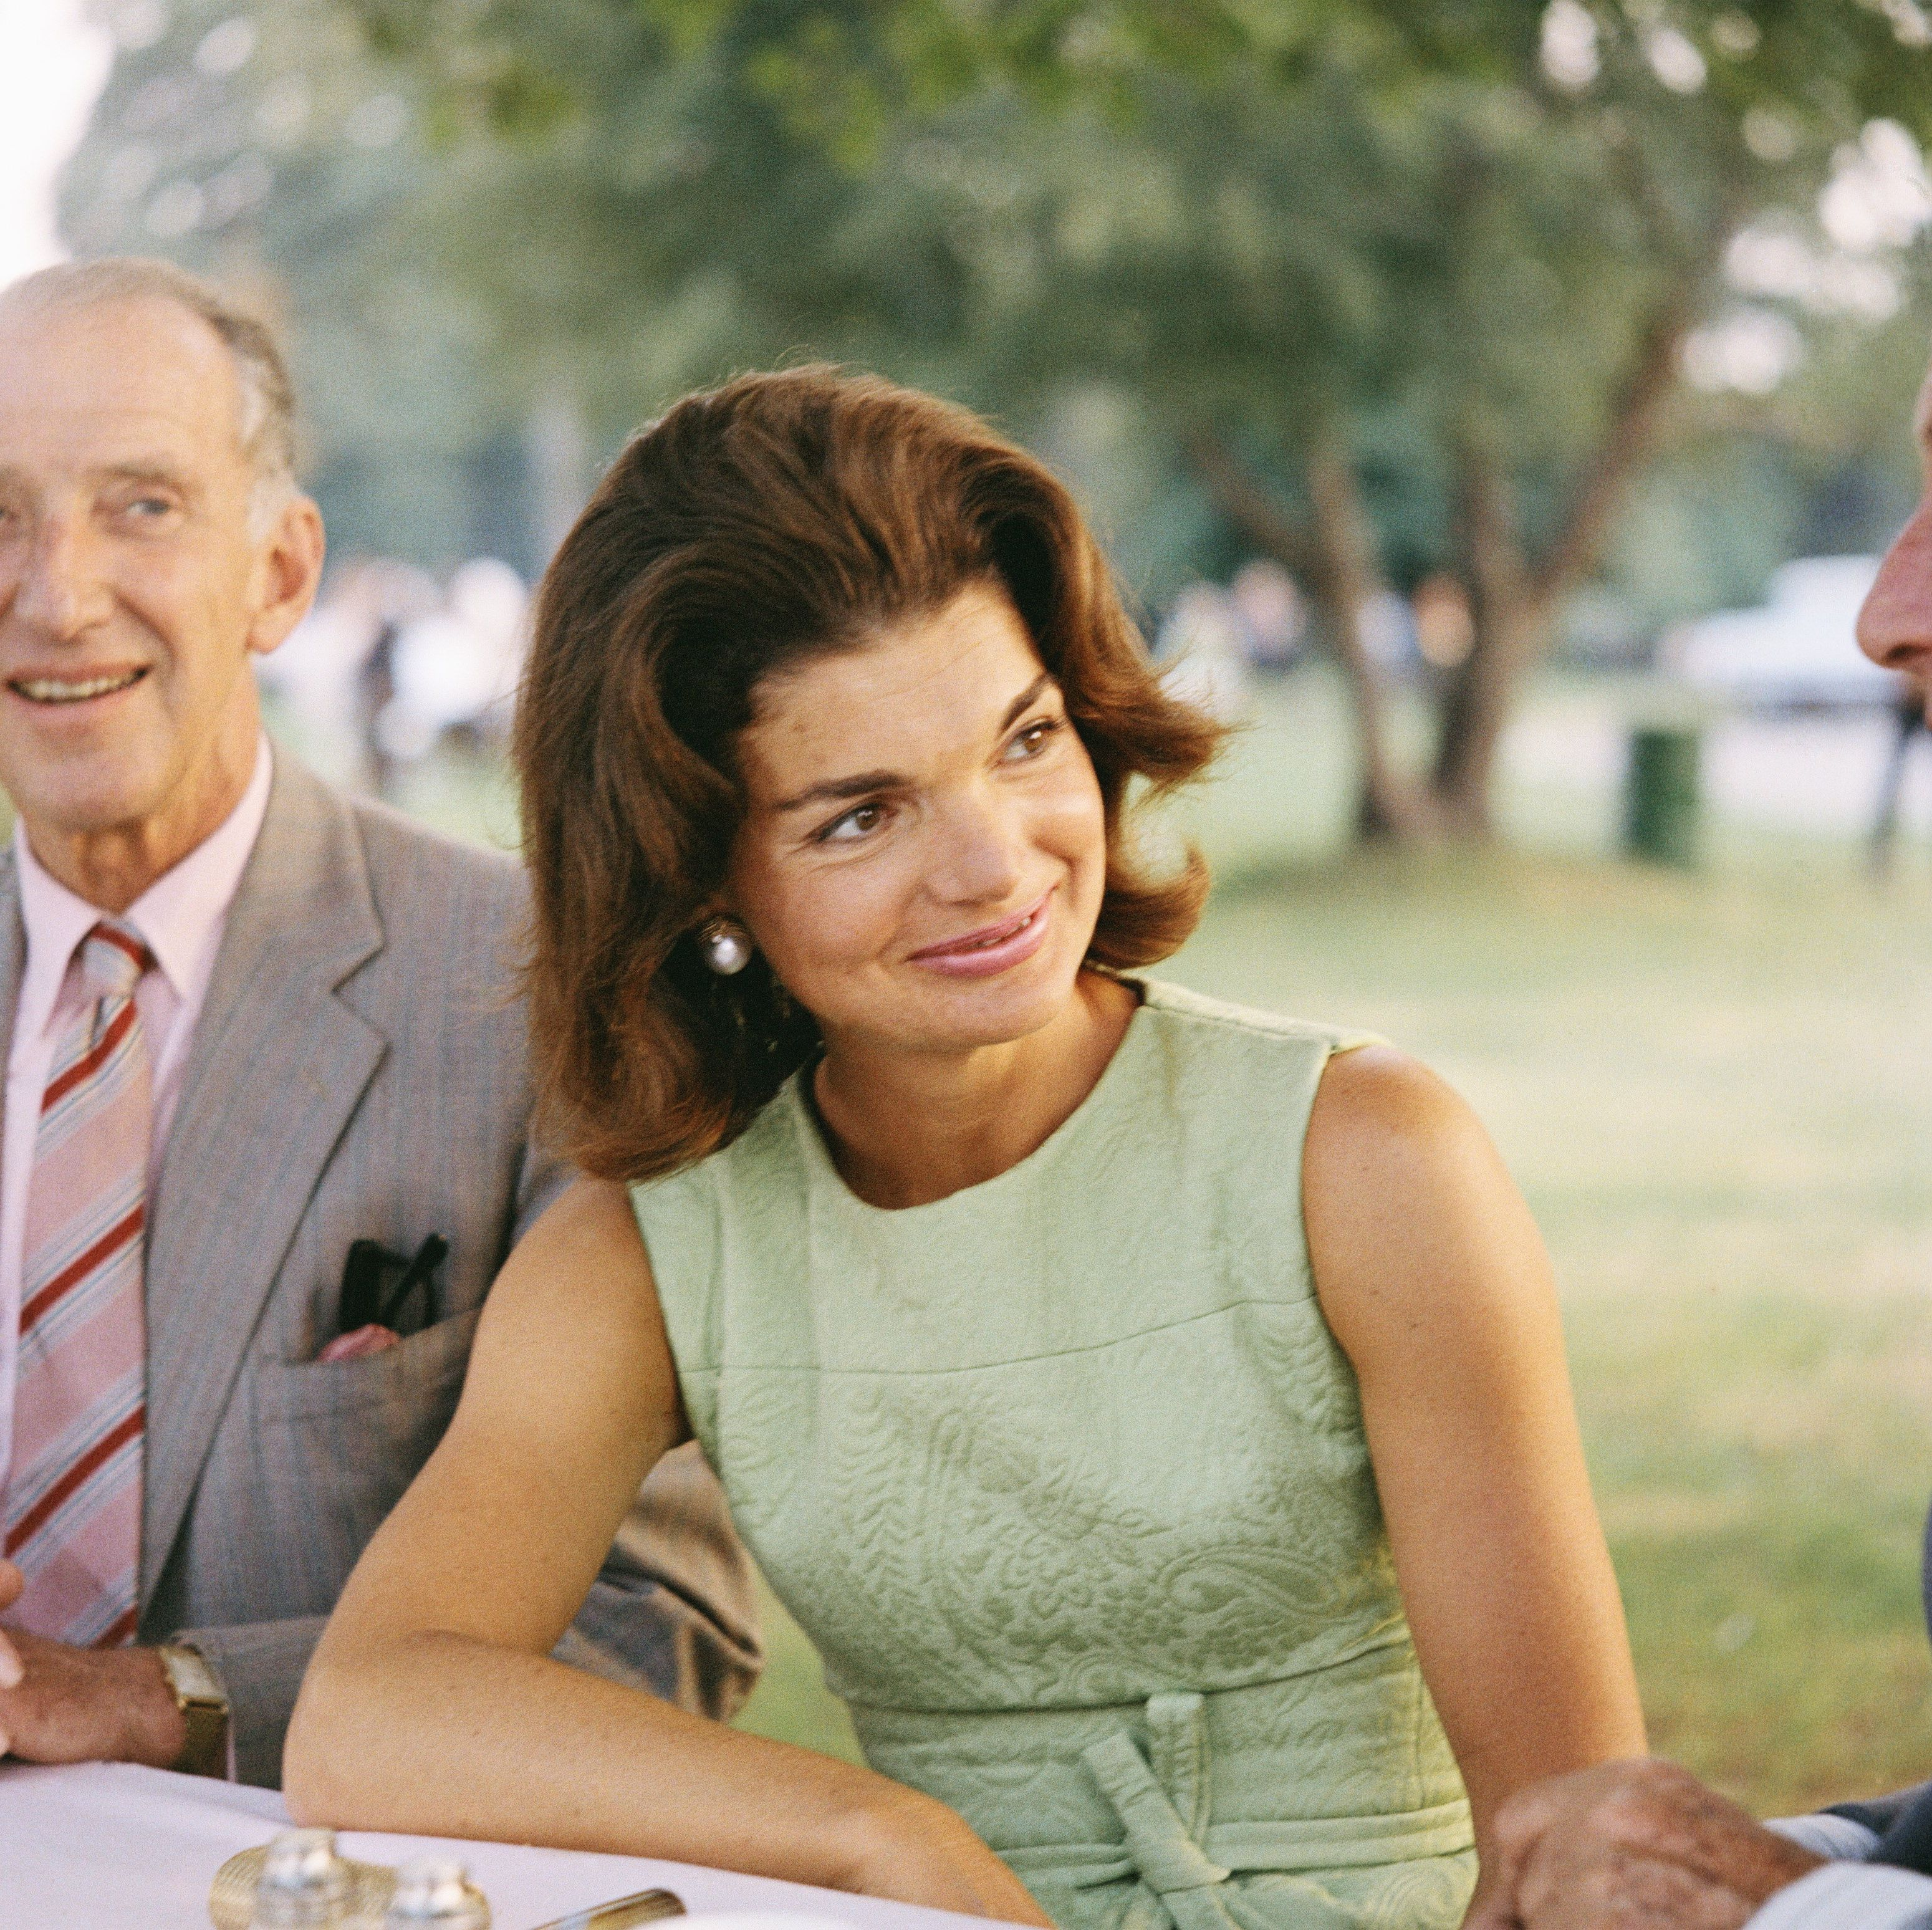 When Jaqueline Bouvier married John F. Kennedy in 1953, she became the other half of a society couple that was envied and idolized the world over. Soft-spoken and supremely stylish, Jackie first earned international fame as her husband's reluctant companion on the campaign trail.